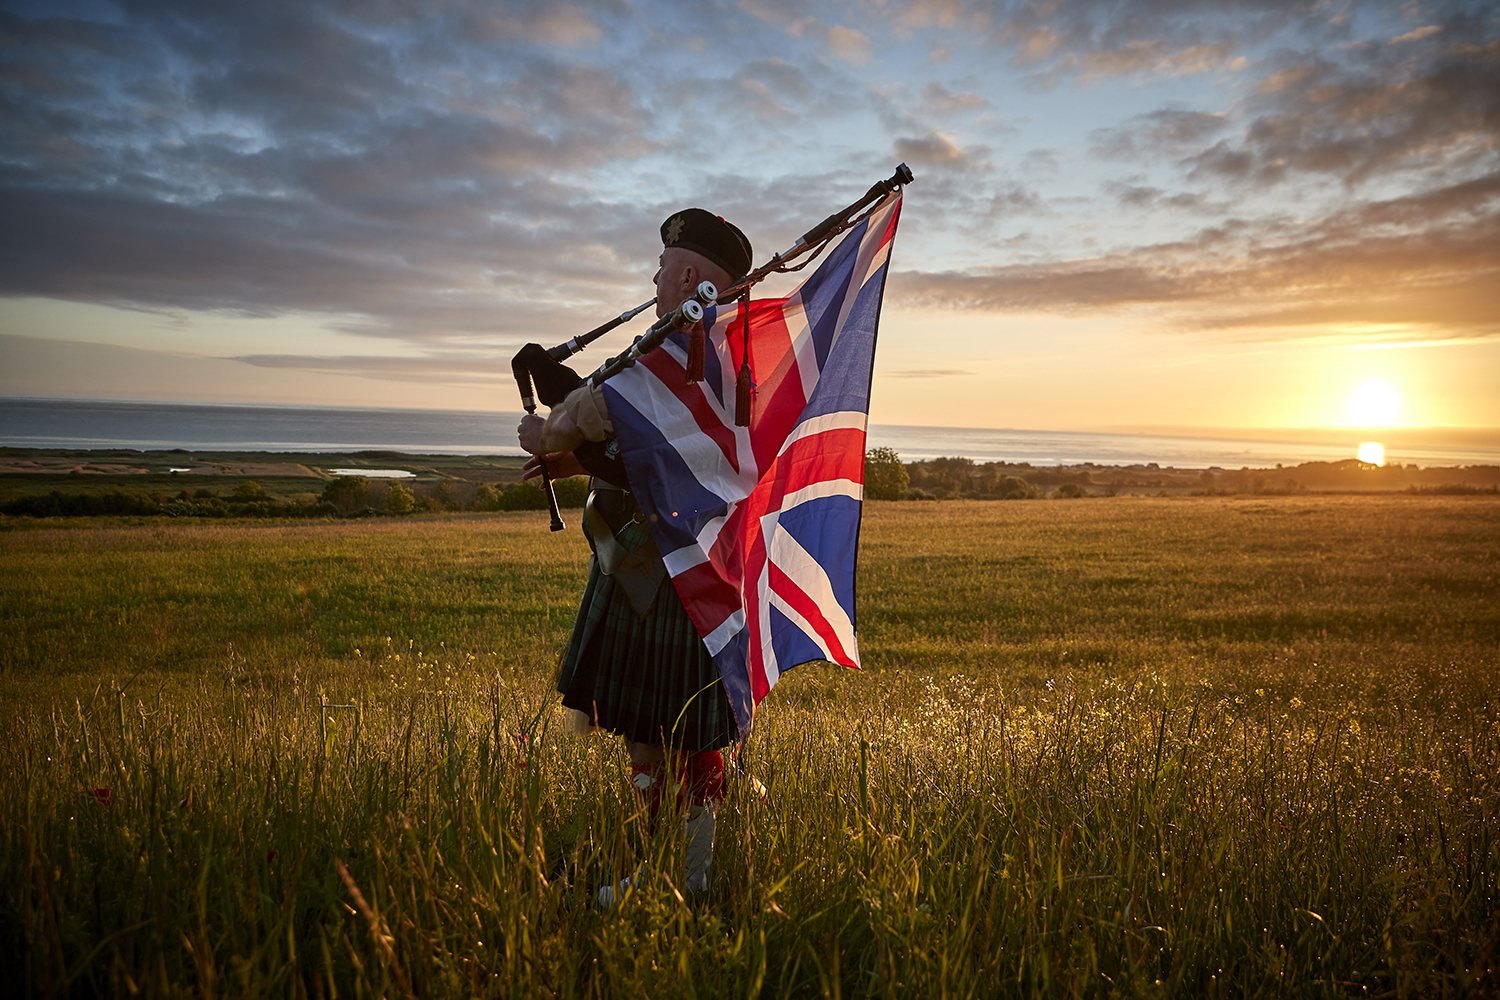 British piper plays at sunrise in France on D-Day anniversary